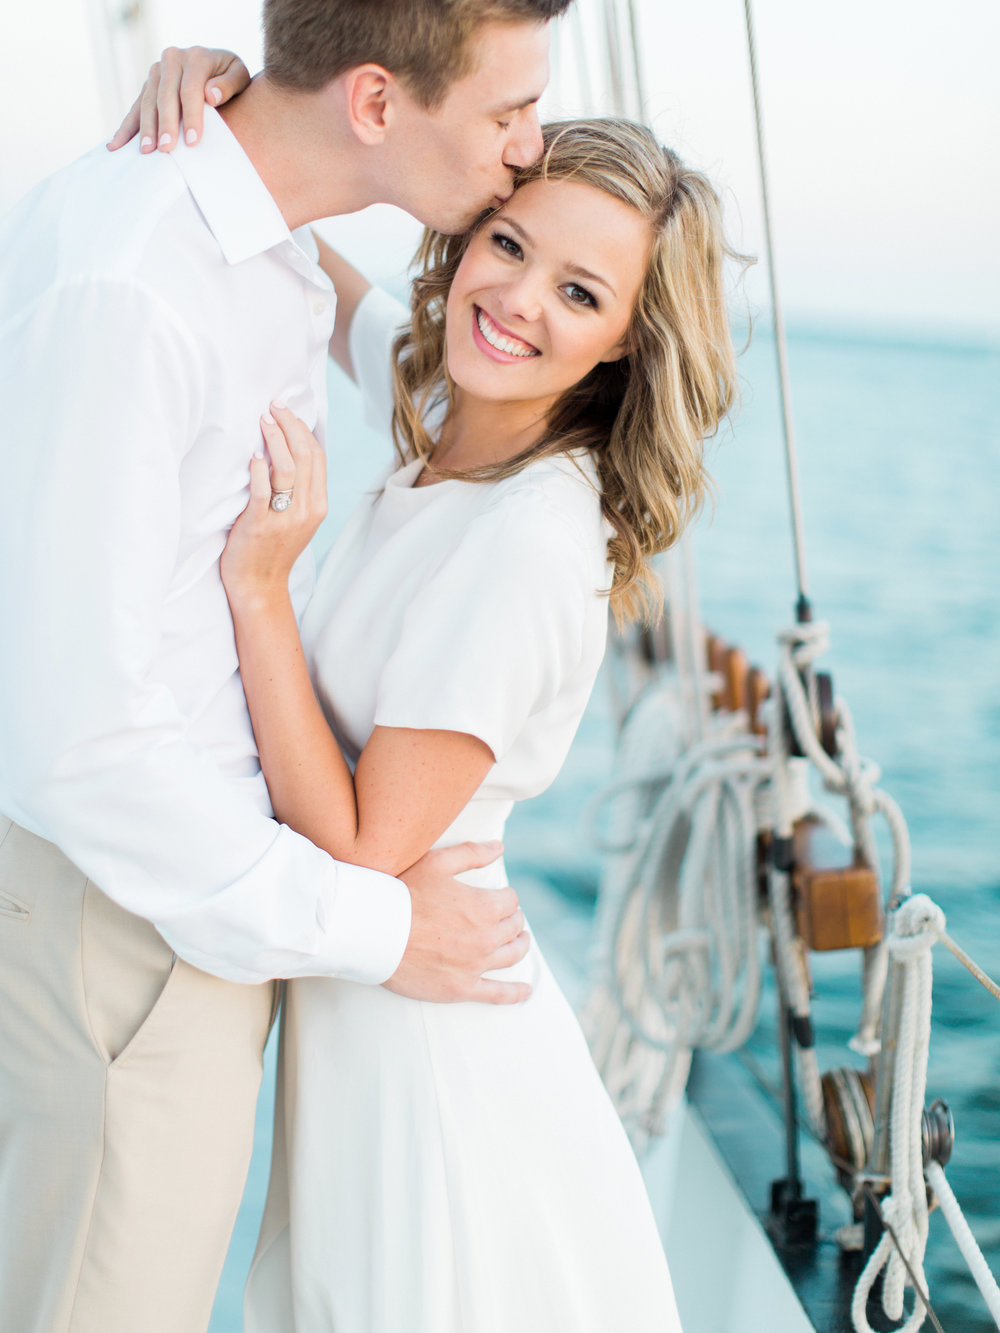 sailboat_elopement-327.jpg